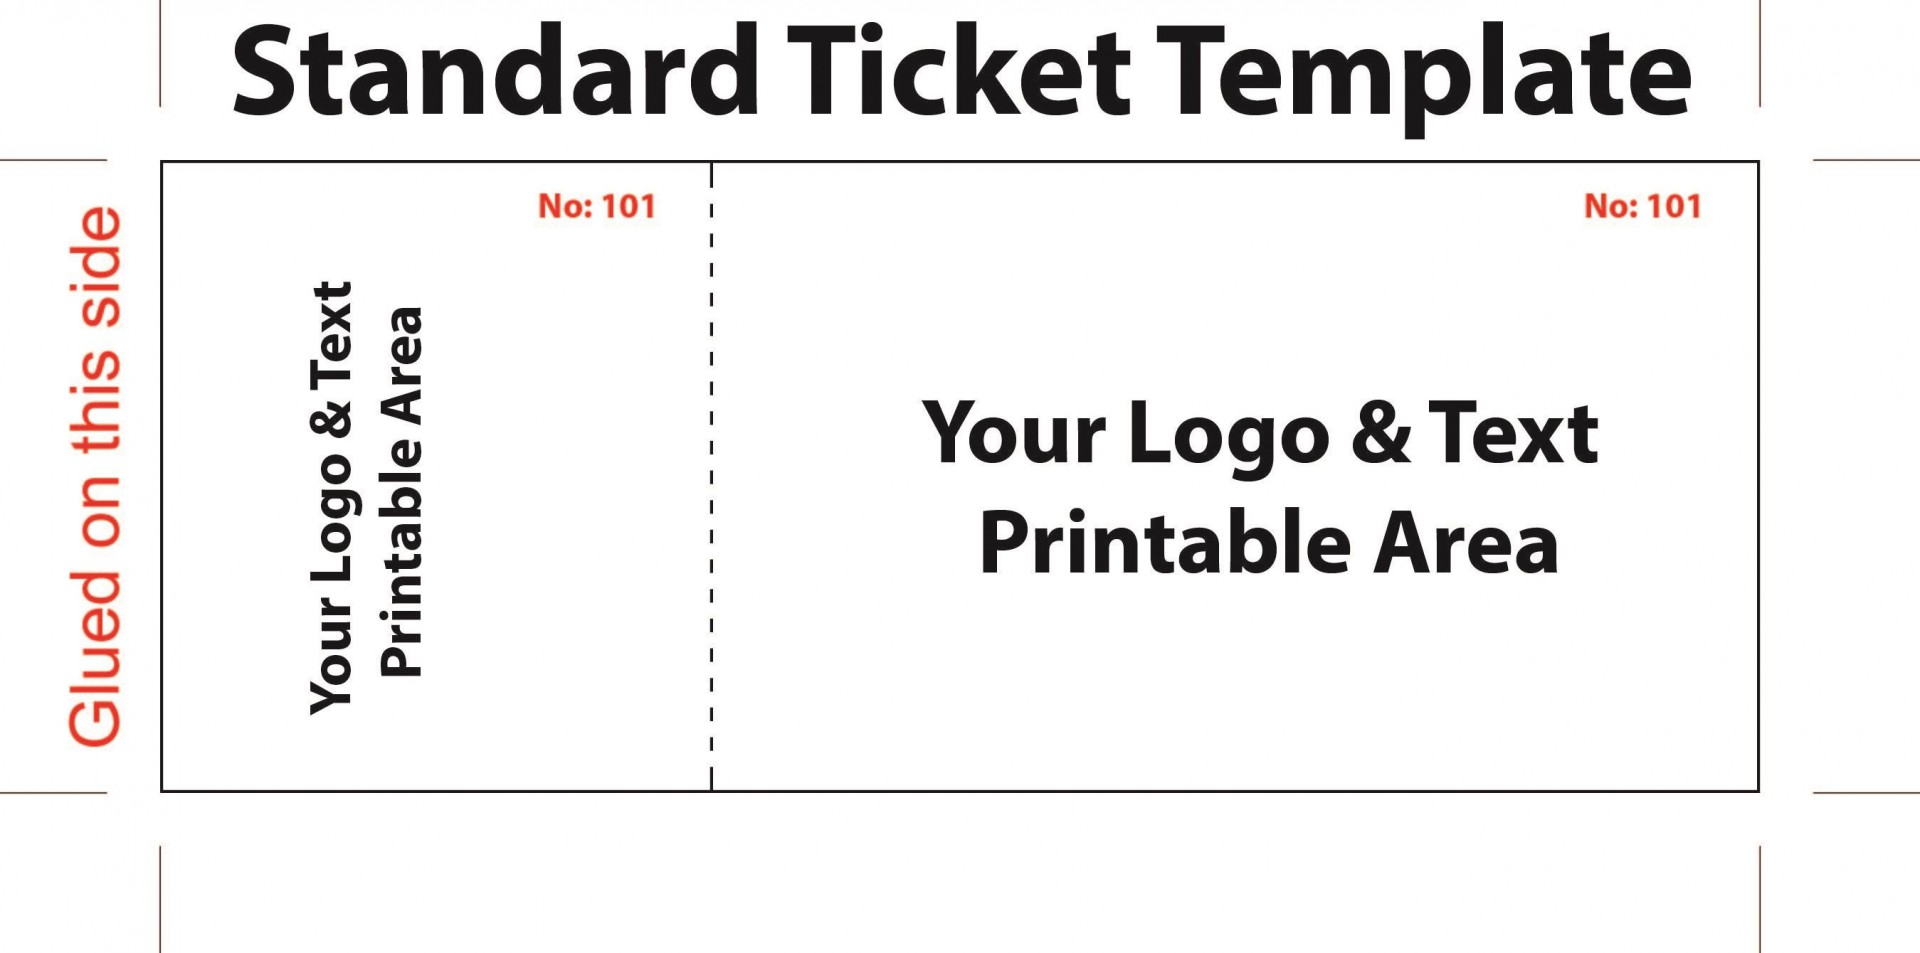 006 Dreaded Concert Ticket Template Word High Resolution  Free Microsoft1920